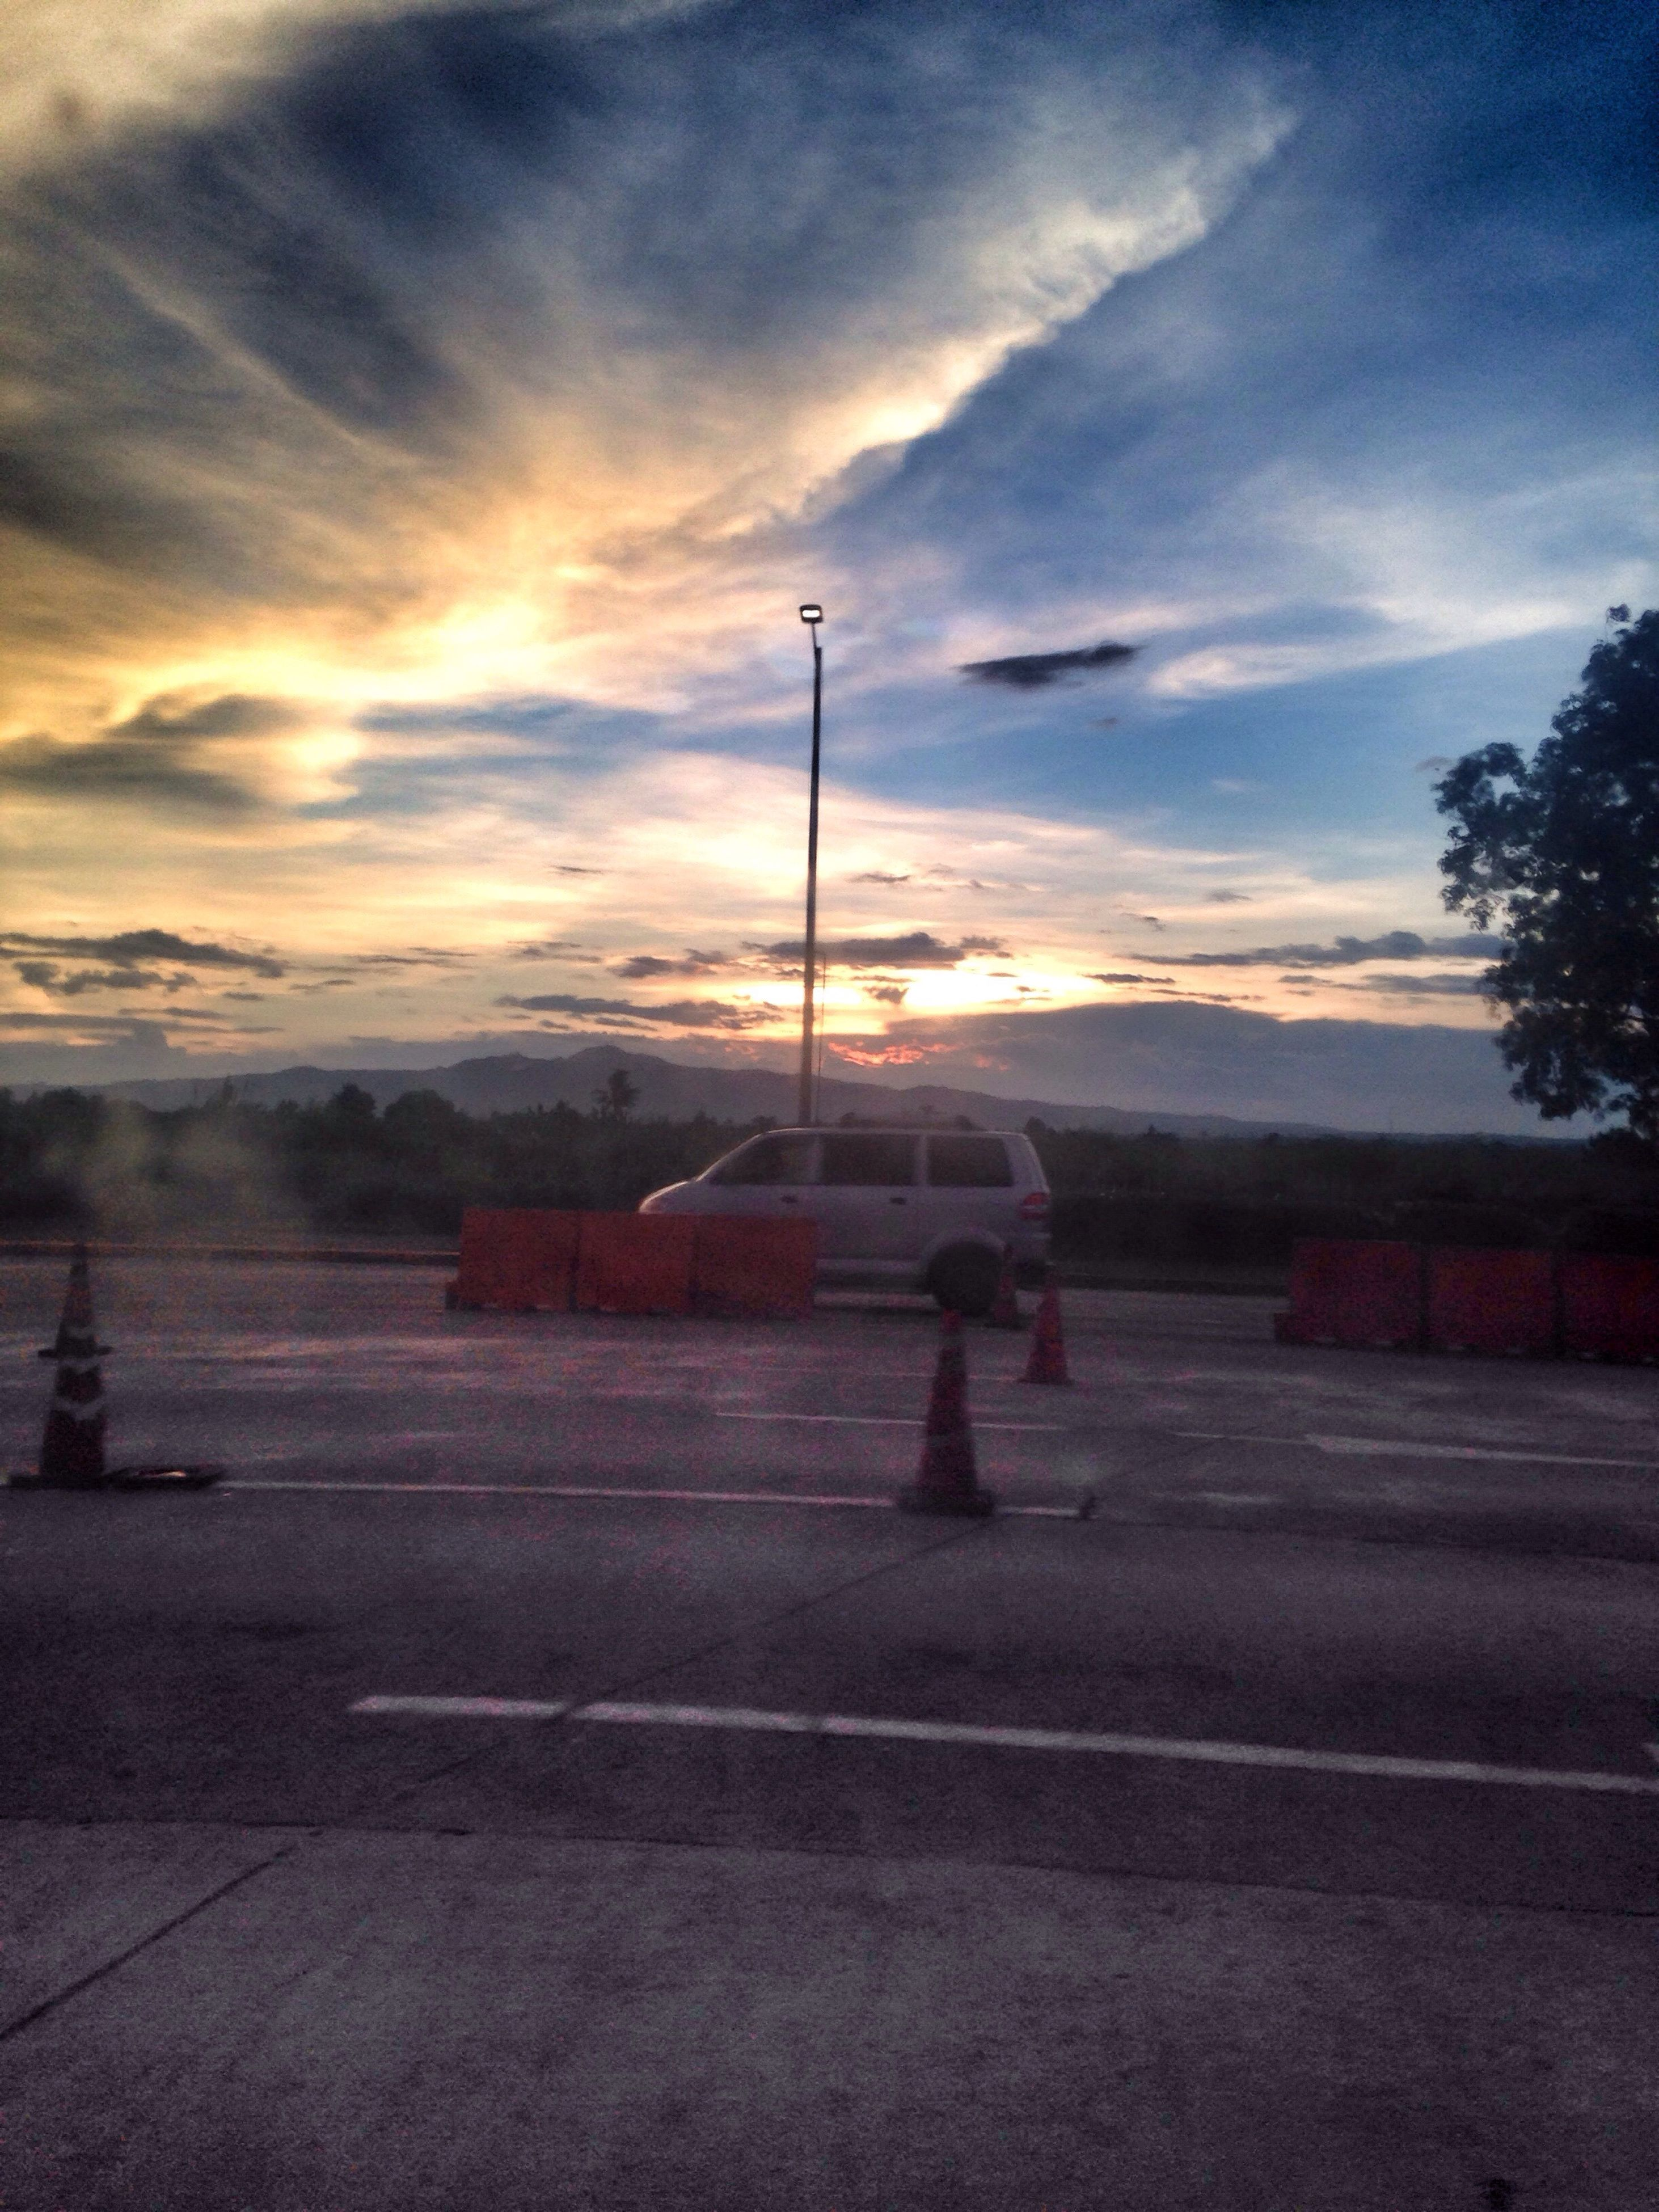 sunset, sky, road, cloud - sky, street light, the way forward, tree, orange color, cloud, landscape, tranquil scene, nature, tranquility, cloudy, scenics, country road, empty, outdoors, beauty in nature, dramatic sky, diminishing perspective, no people, illuminated, idyllic, vanishing point, weather, non-urban scene